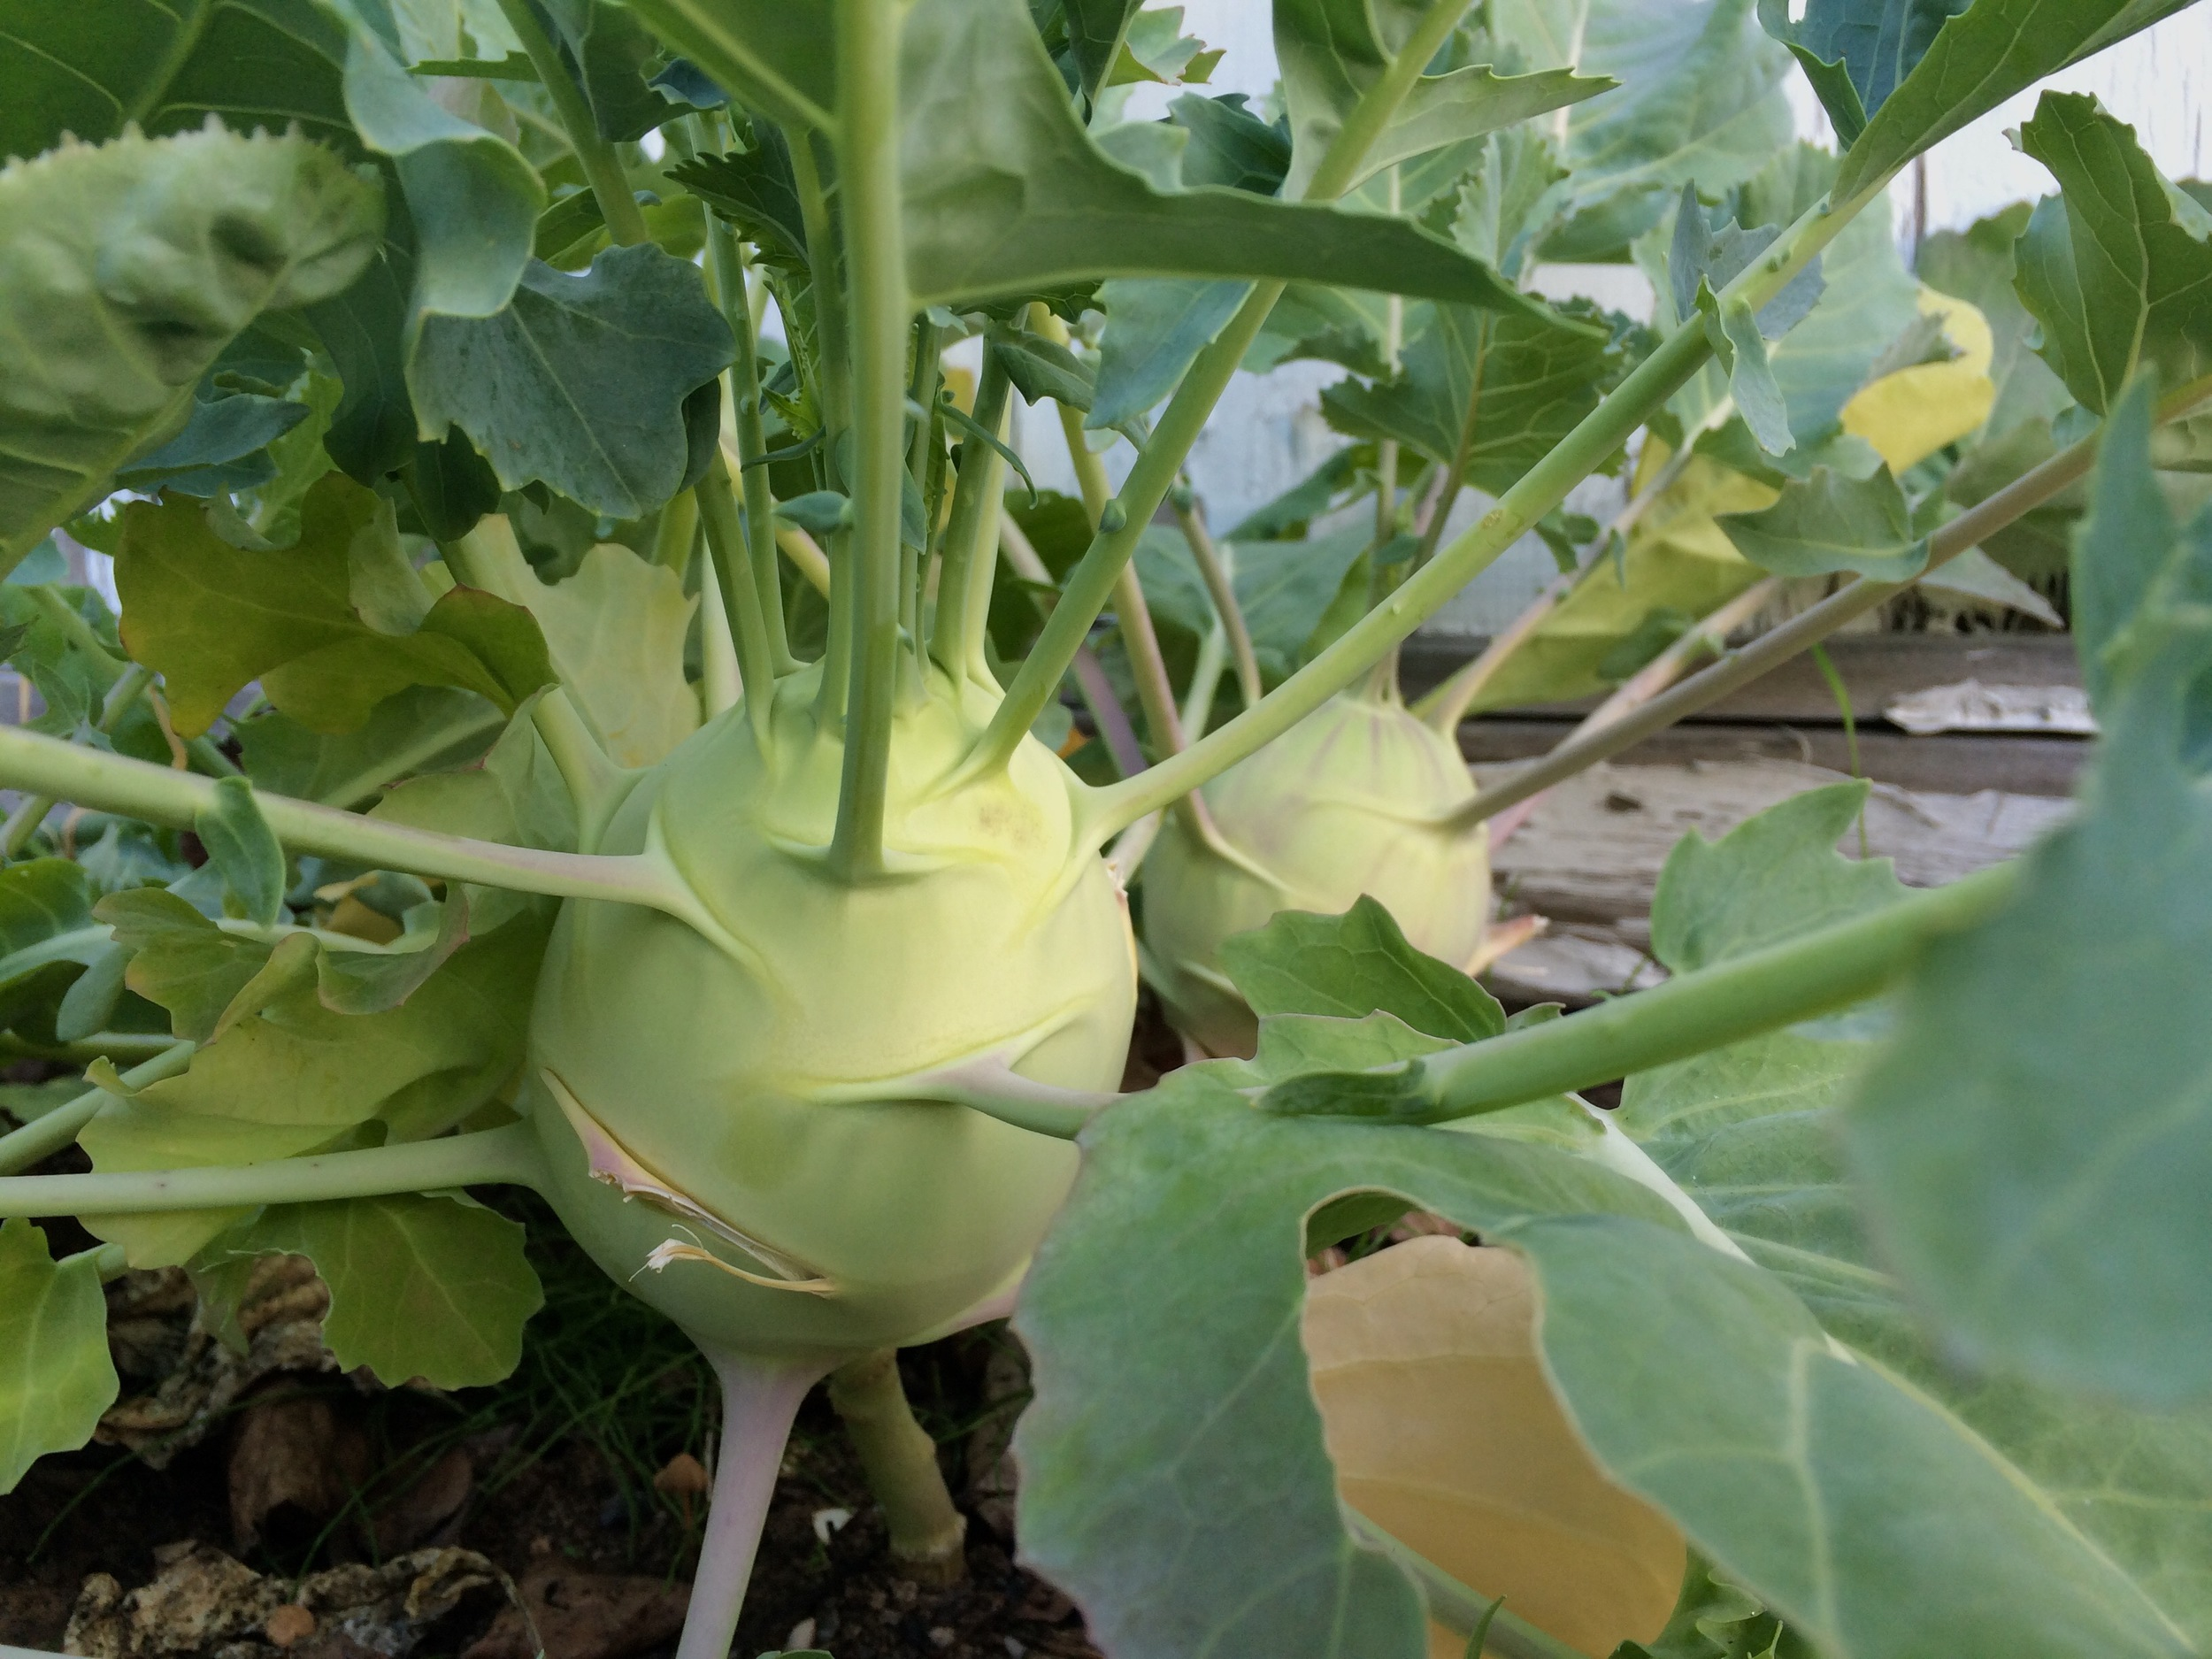 Odd, but delicious kohlrabi